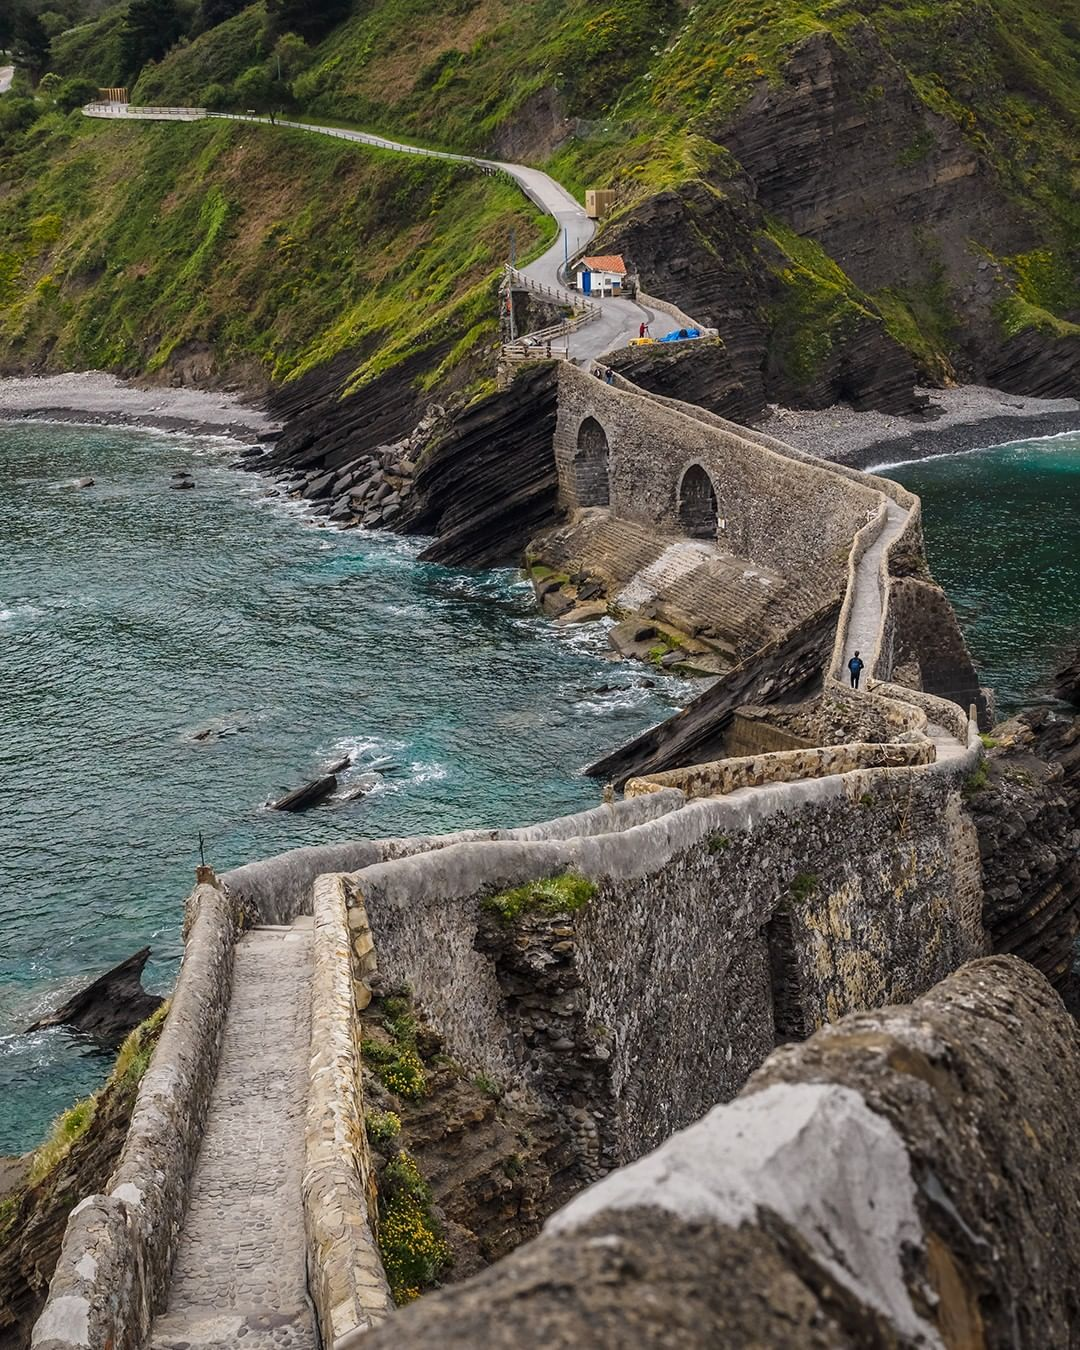 Zigzag Through The Island Of San Juan De Gaztelugatxe And Take In The Sights On A Picturesque Path You May Reco Travel Inspiration Travel Family Beach Vacation